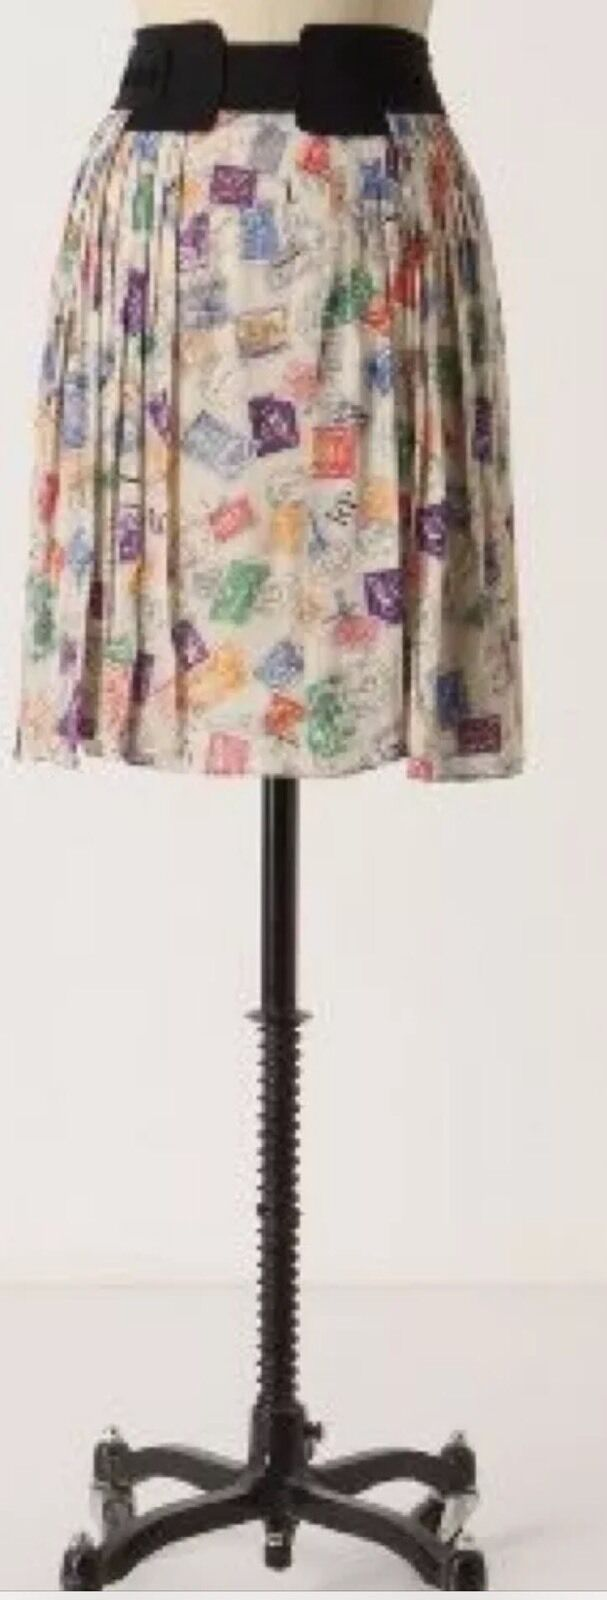 Anthropologie Edme & Esyllte Air Mail Skirt Postage Stamp Size 4